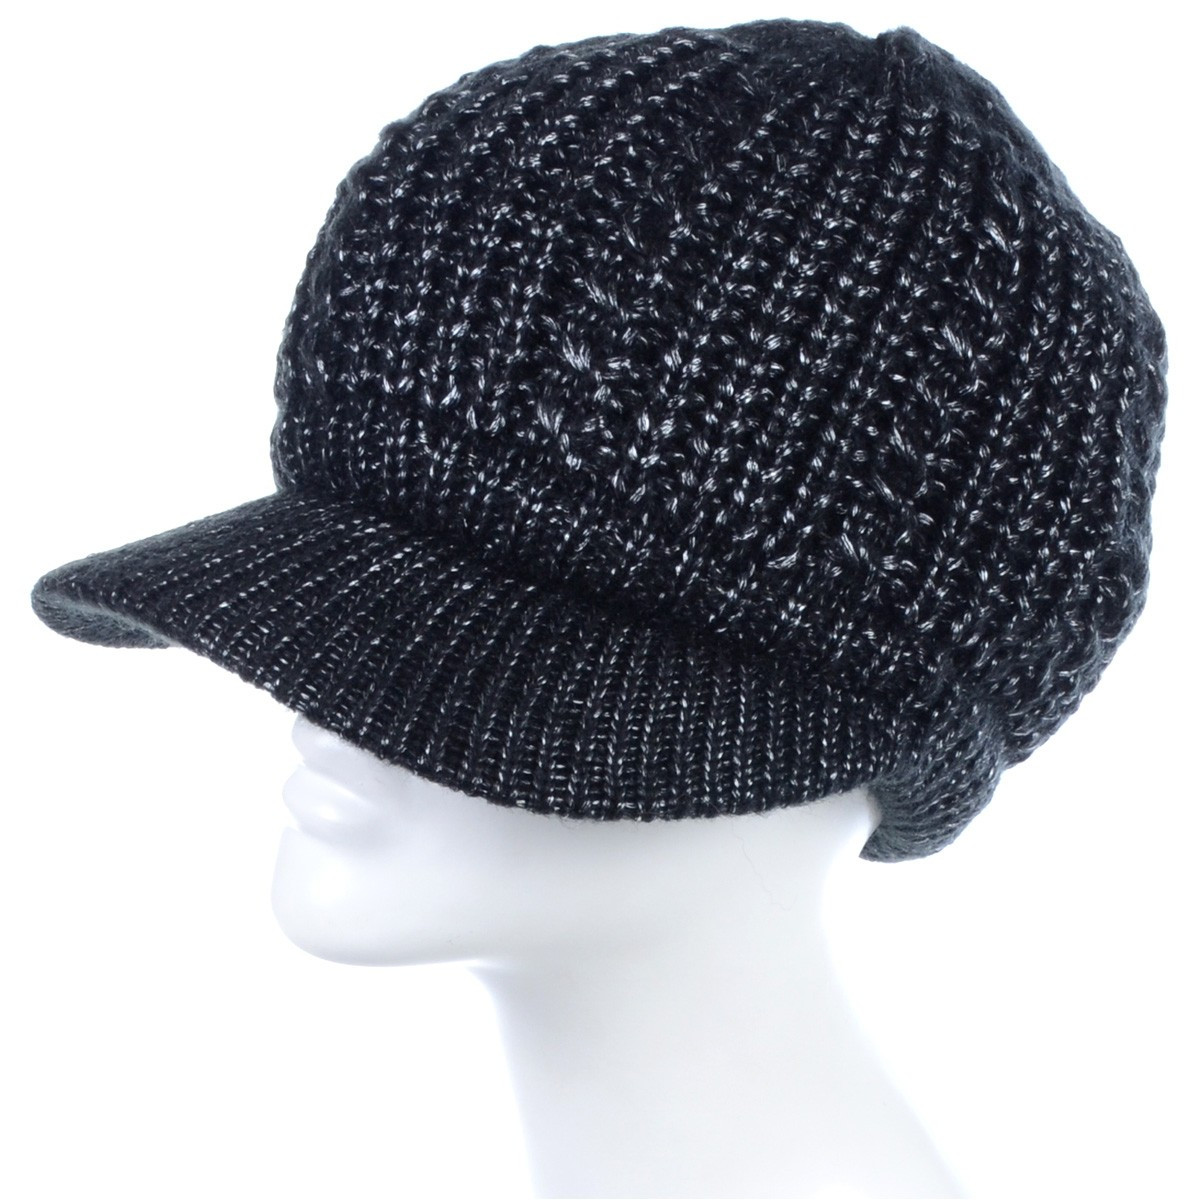 Best Of wholesale Winter Knit Hats with Brim In assorted Colors Winter Knit Hats Of Charming 40 Photos Winter Knit Hats